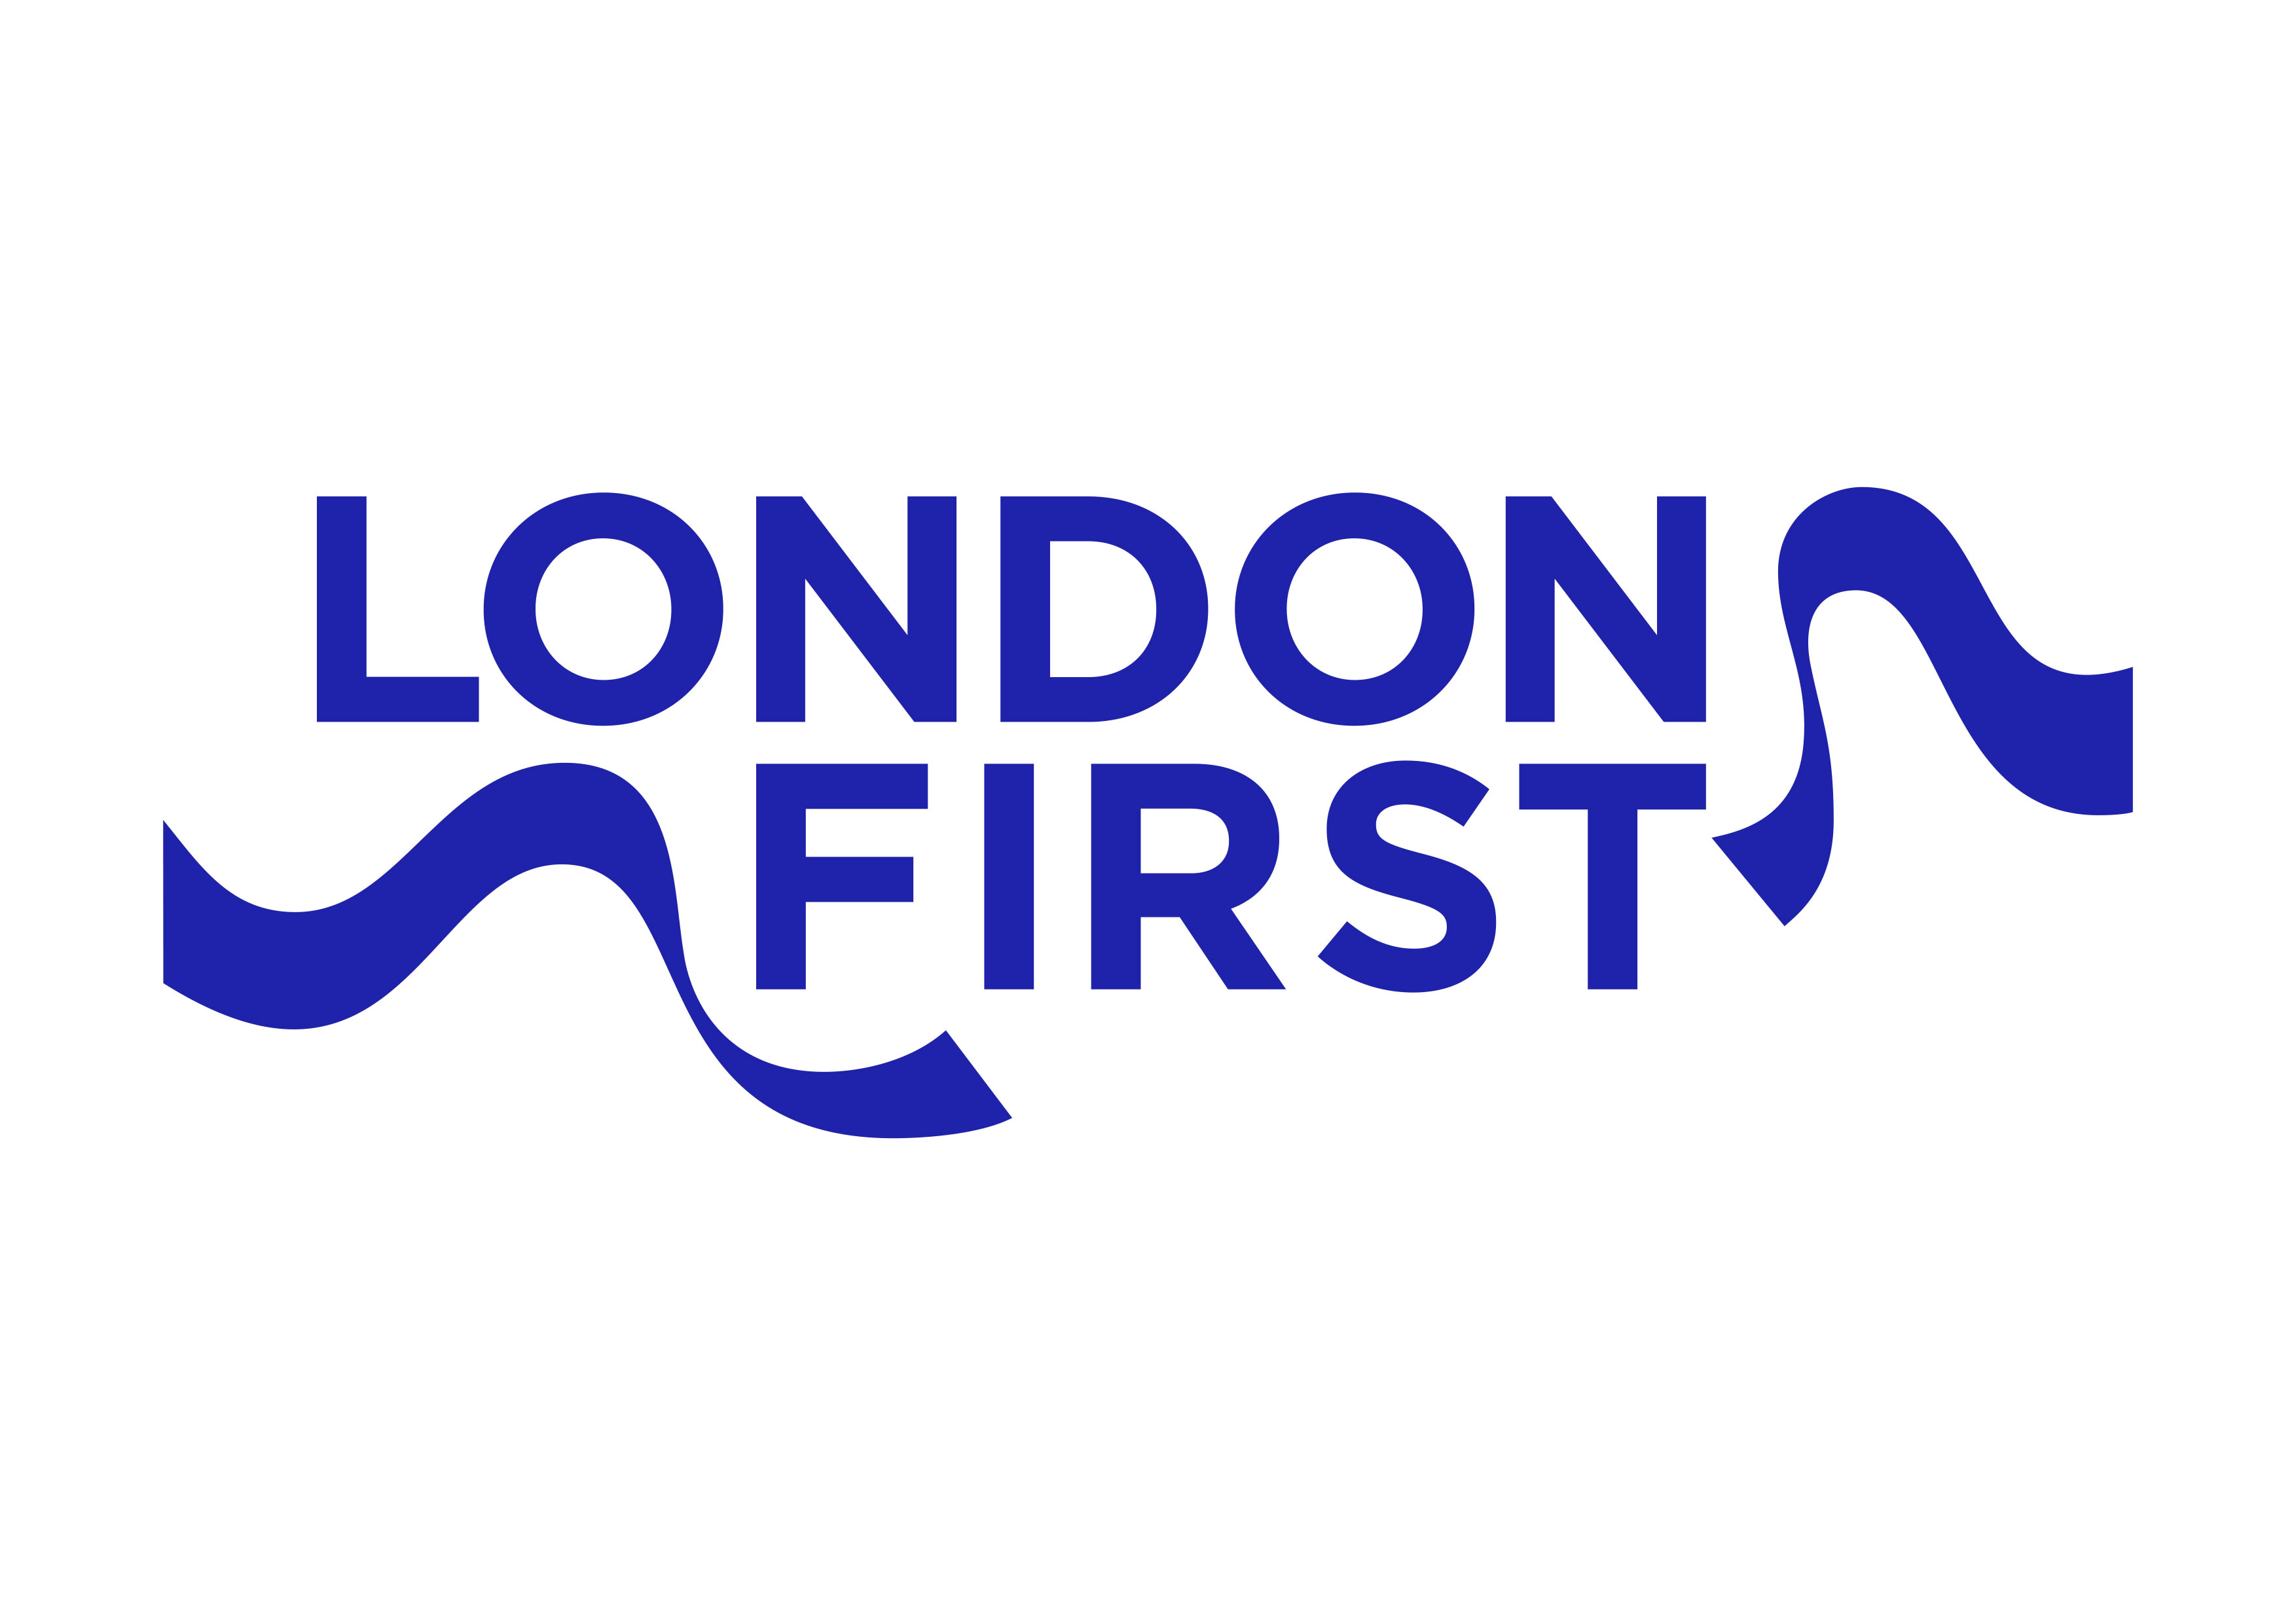 London First logo